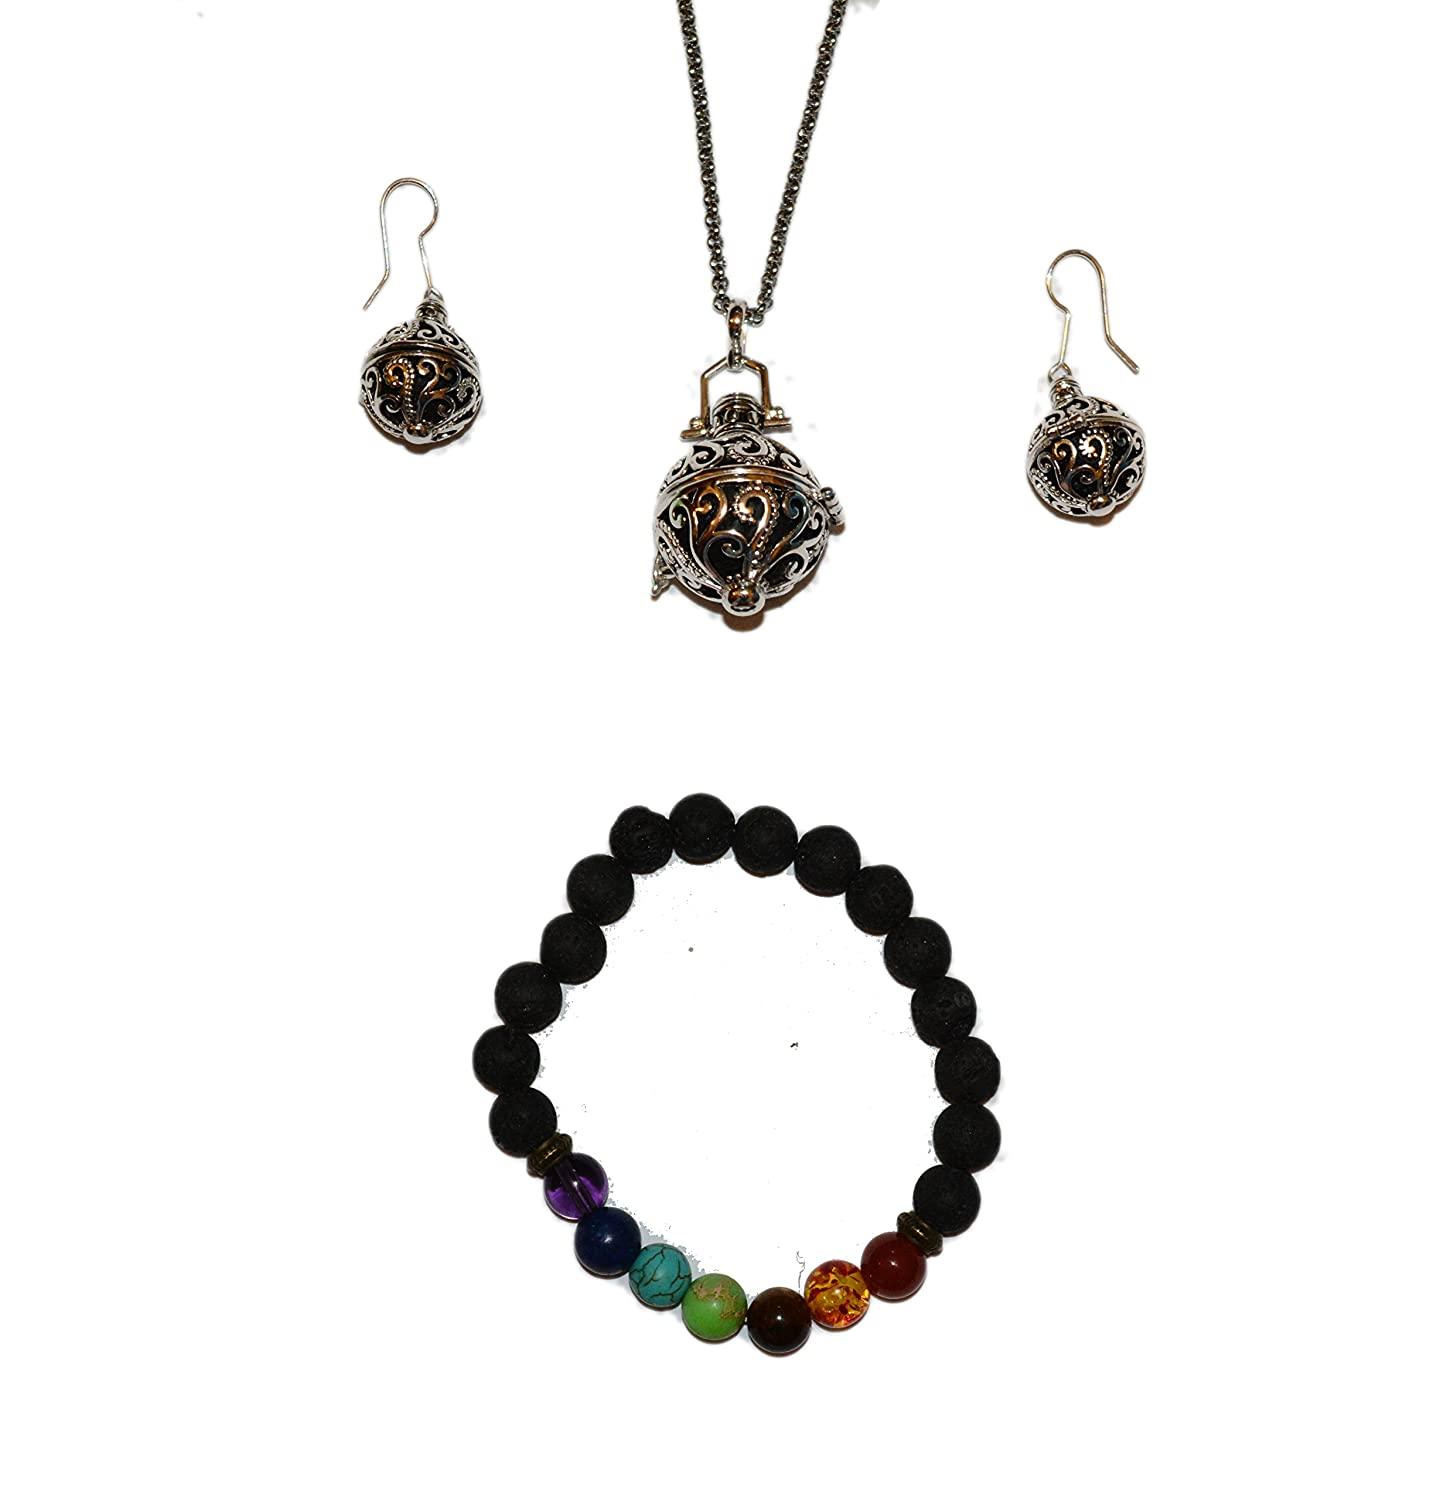 LAVA BEAD EARRINGS  Essential Oil Accessories  Essential Oil Diffuser Jewelry  Macrame Earrings with Beads  Gifts for Her